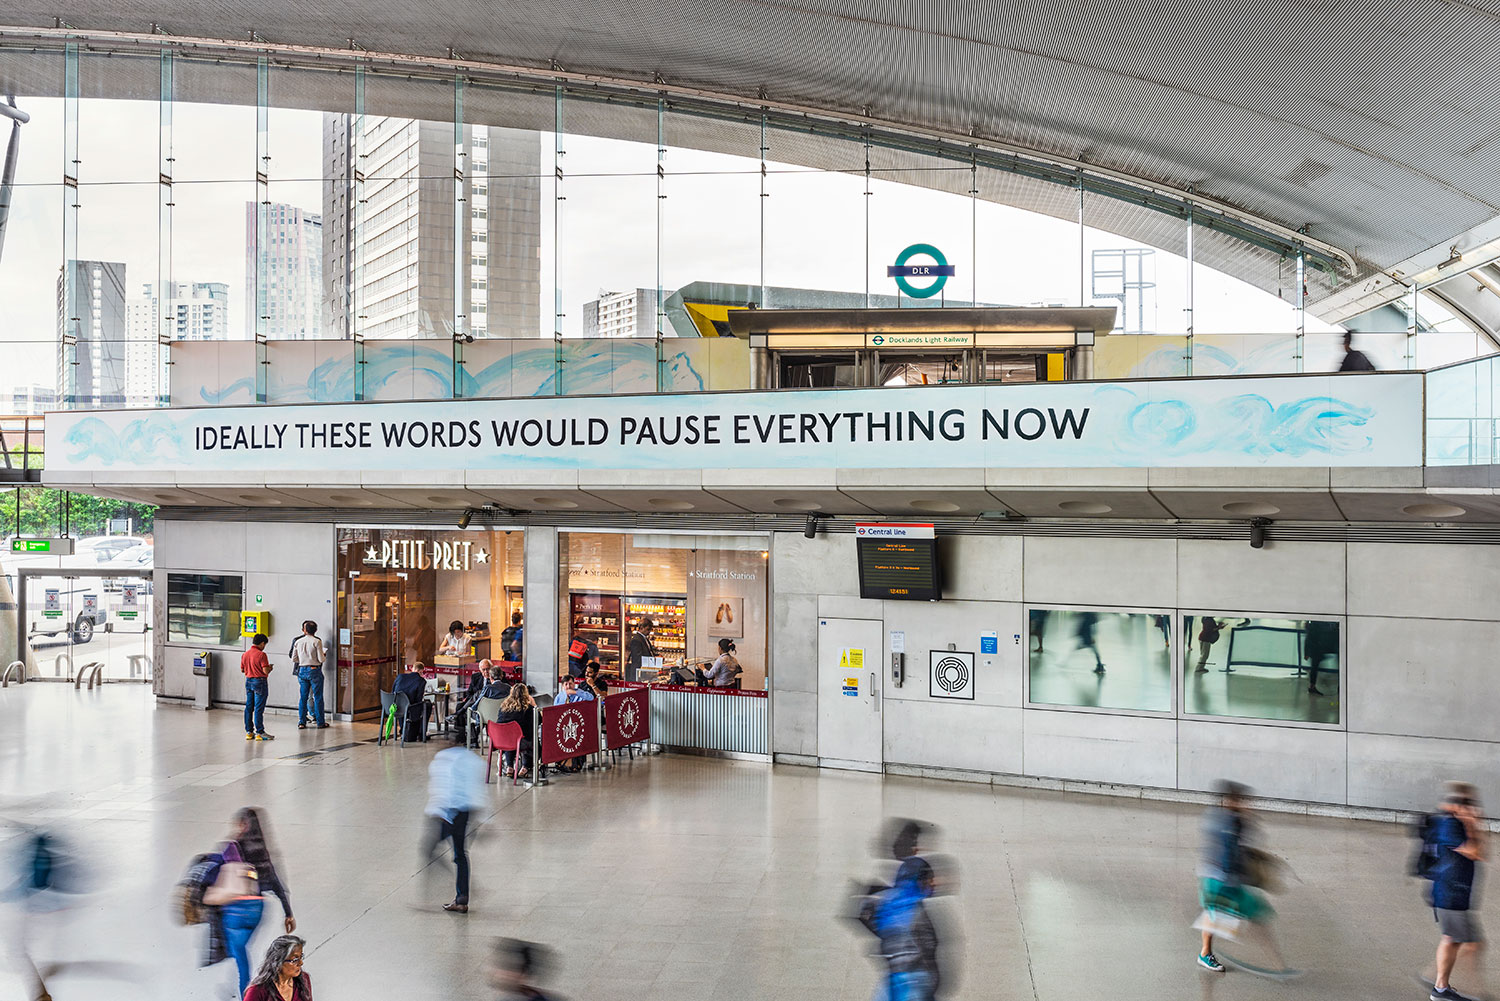 Laure Prouvost, You are deeper than what you think, Stratford station, 2019. Commissioned by Art on the Underground. Photo Thierry Bal